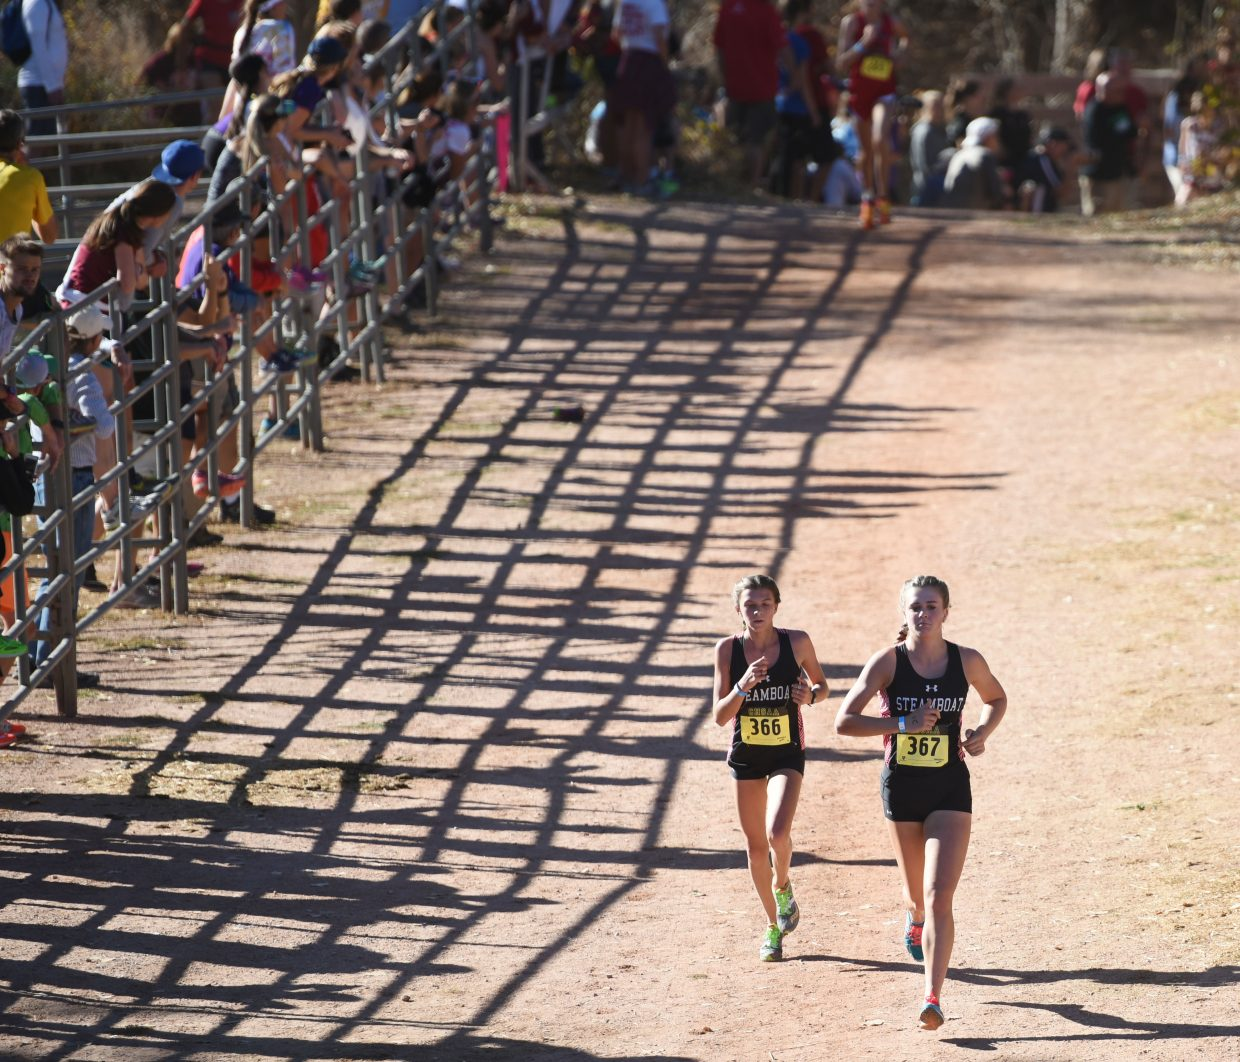 Steamboat freshman Maggi Congdon, left, and junior Sadie Cotton run toward the finish line Saturday at the Class 3A state cross country championships in Colorado Springs. The pair finished 17th and 18th respectively.